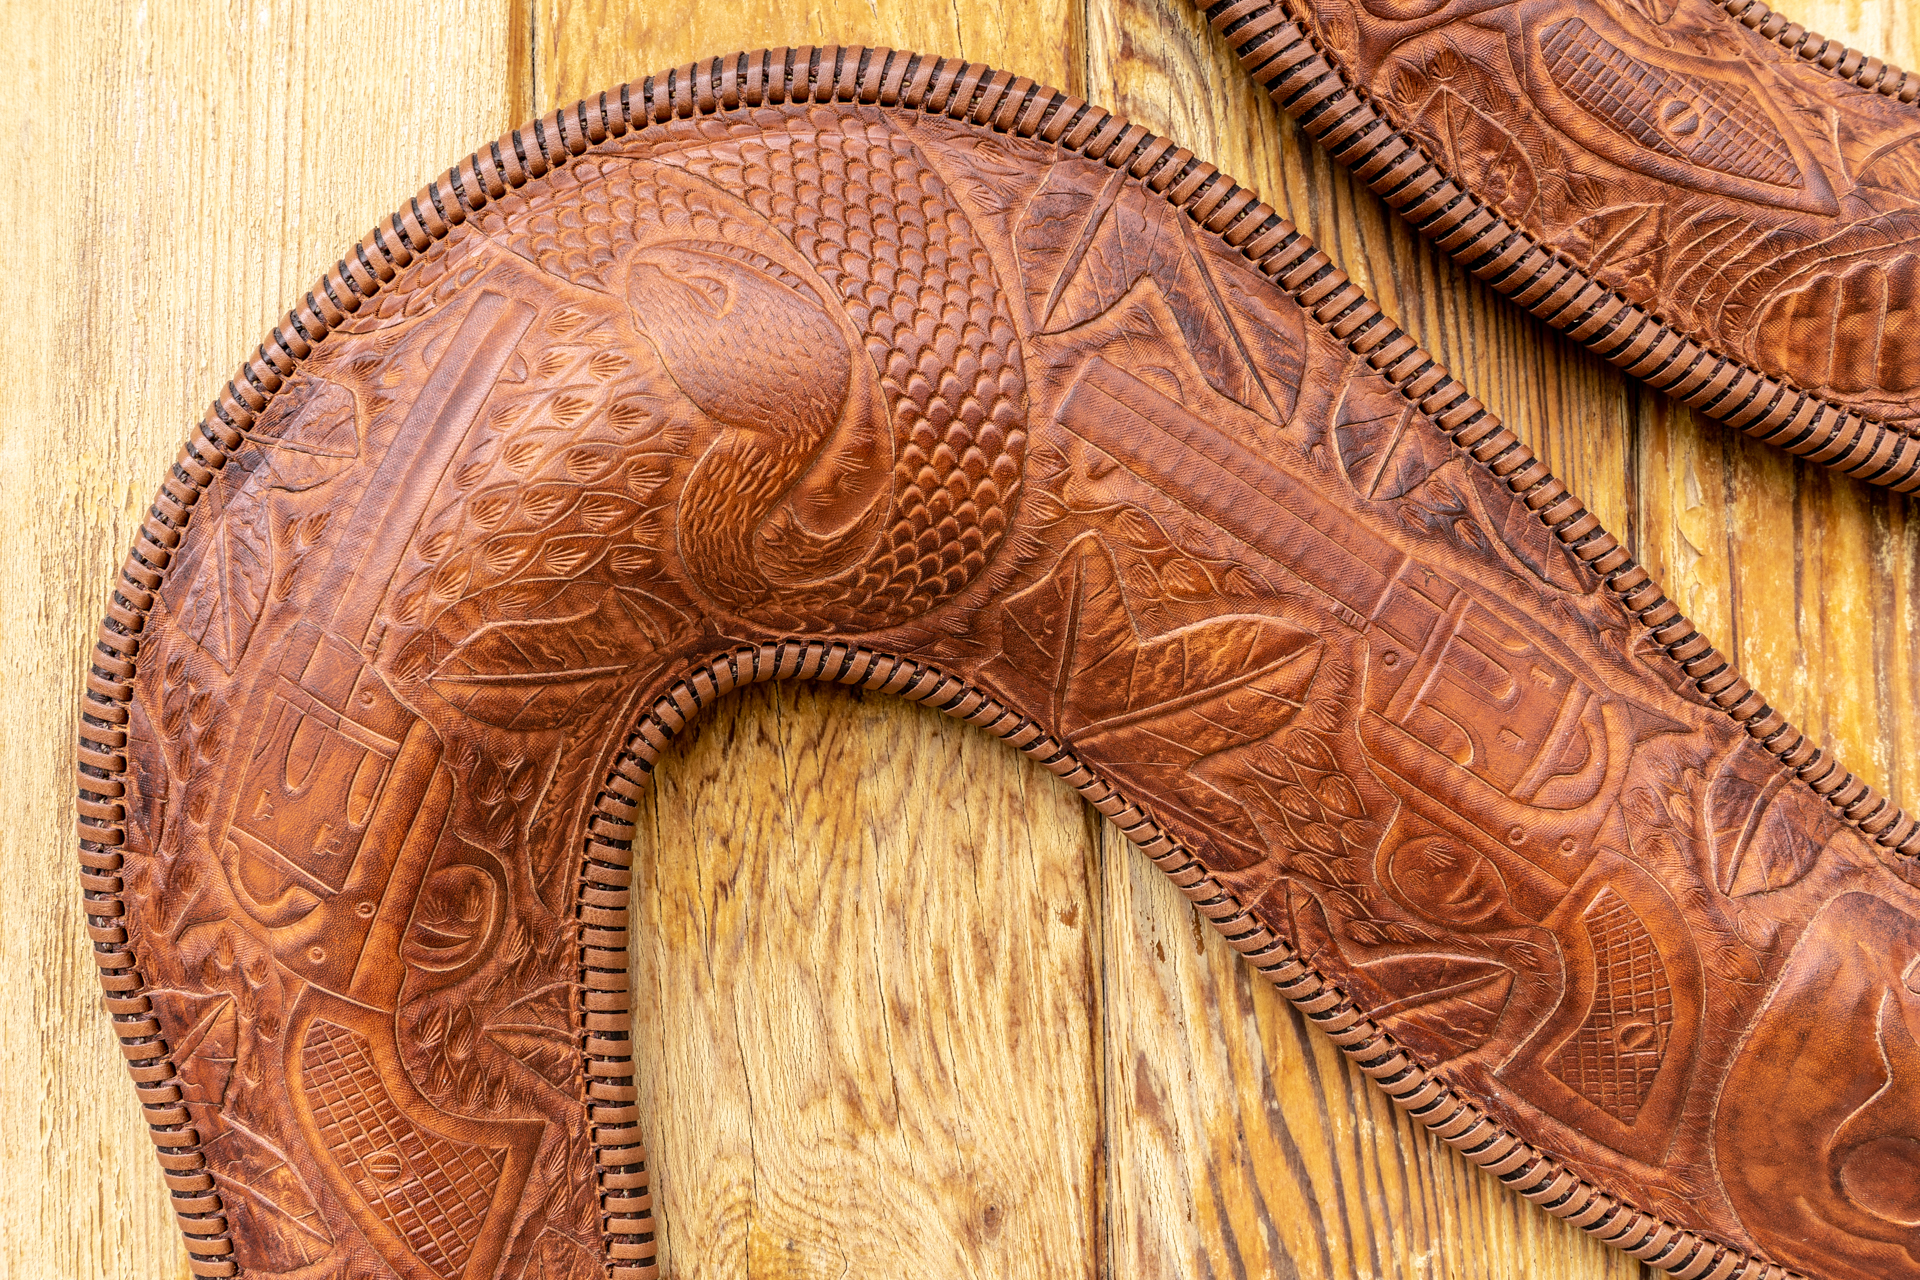 Leather Rattle snake with images of guns